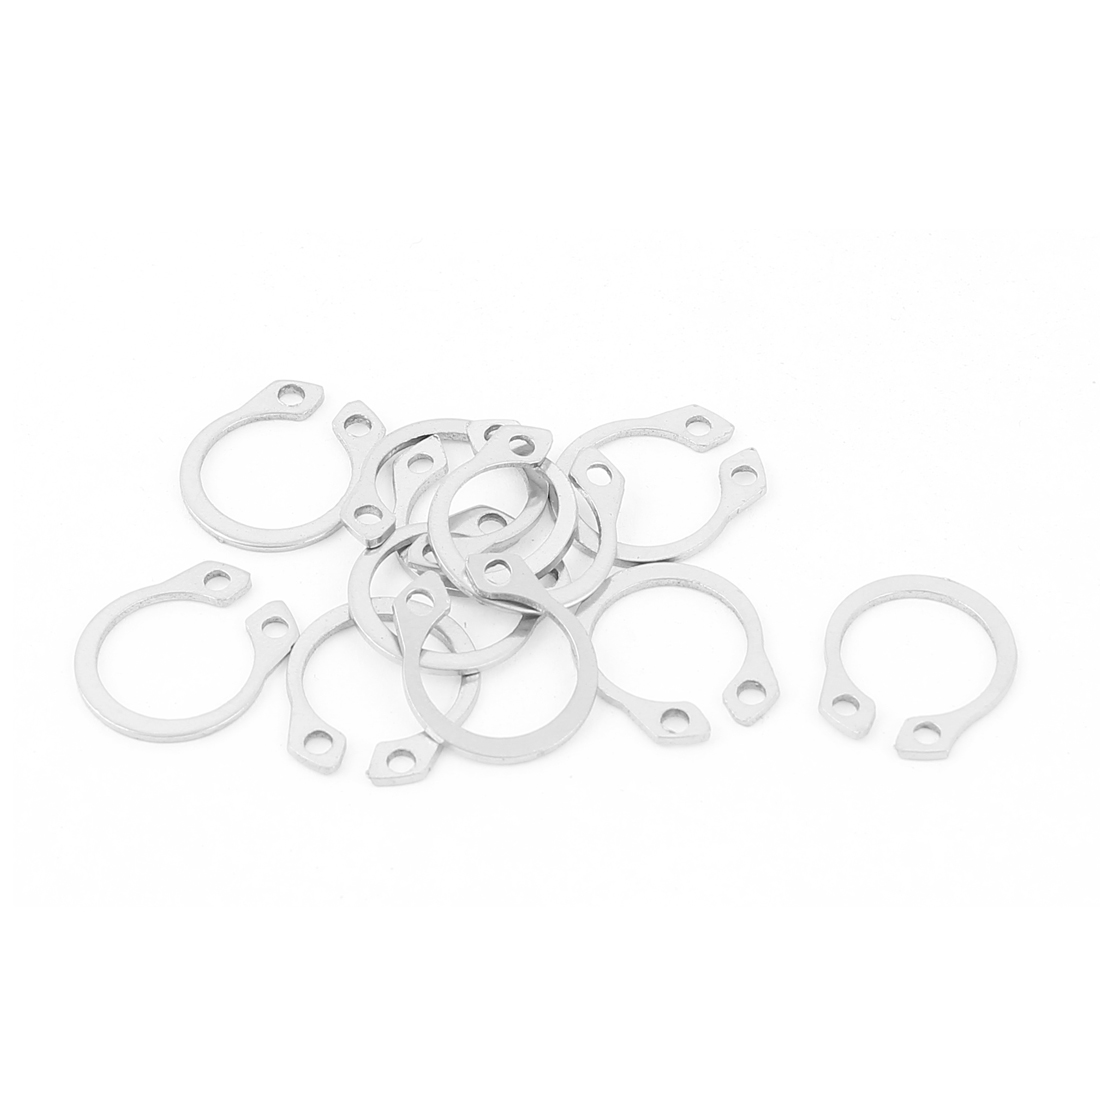 10pcs 304 Stainless Steel External Circlip Retaining Shaft Snap Rings 12mm